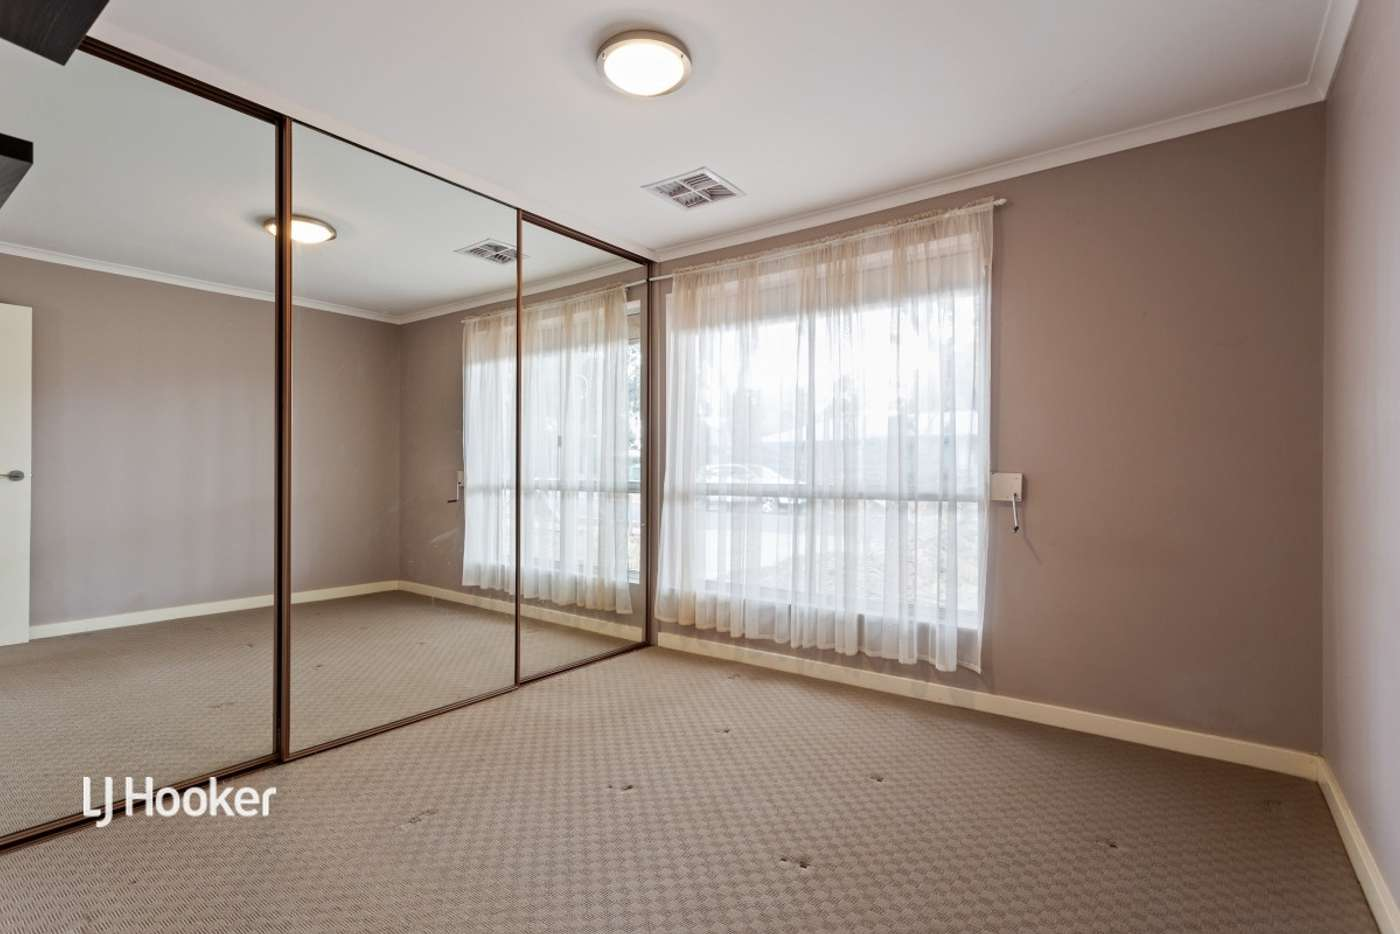 Fifth view of Homely house listing, 8 Casuarina Drive, Parafield Gardens SA 5107